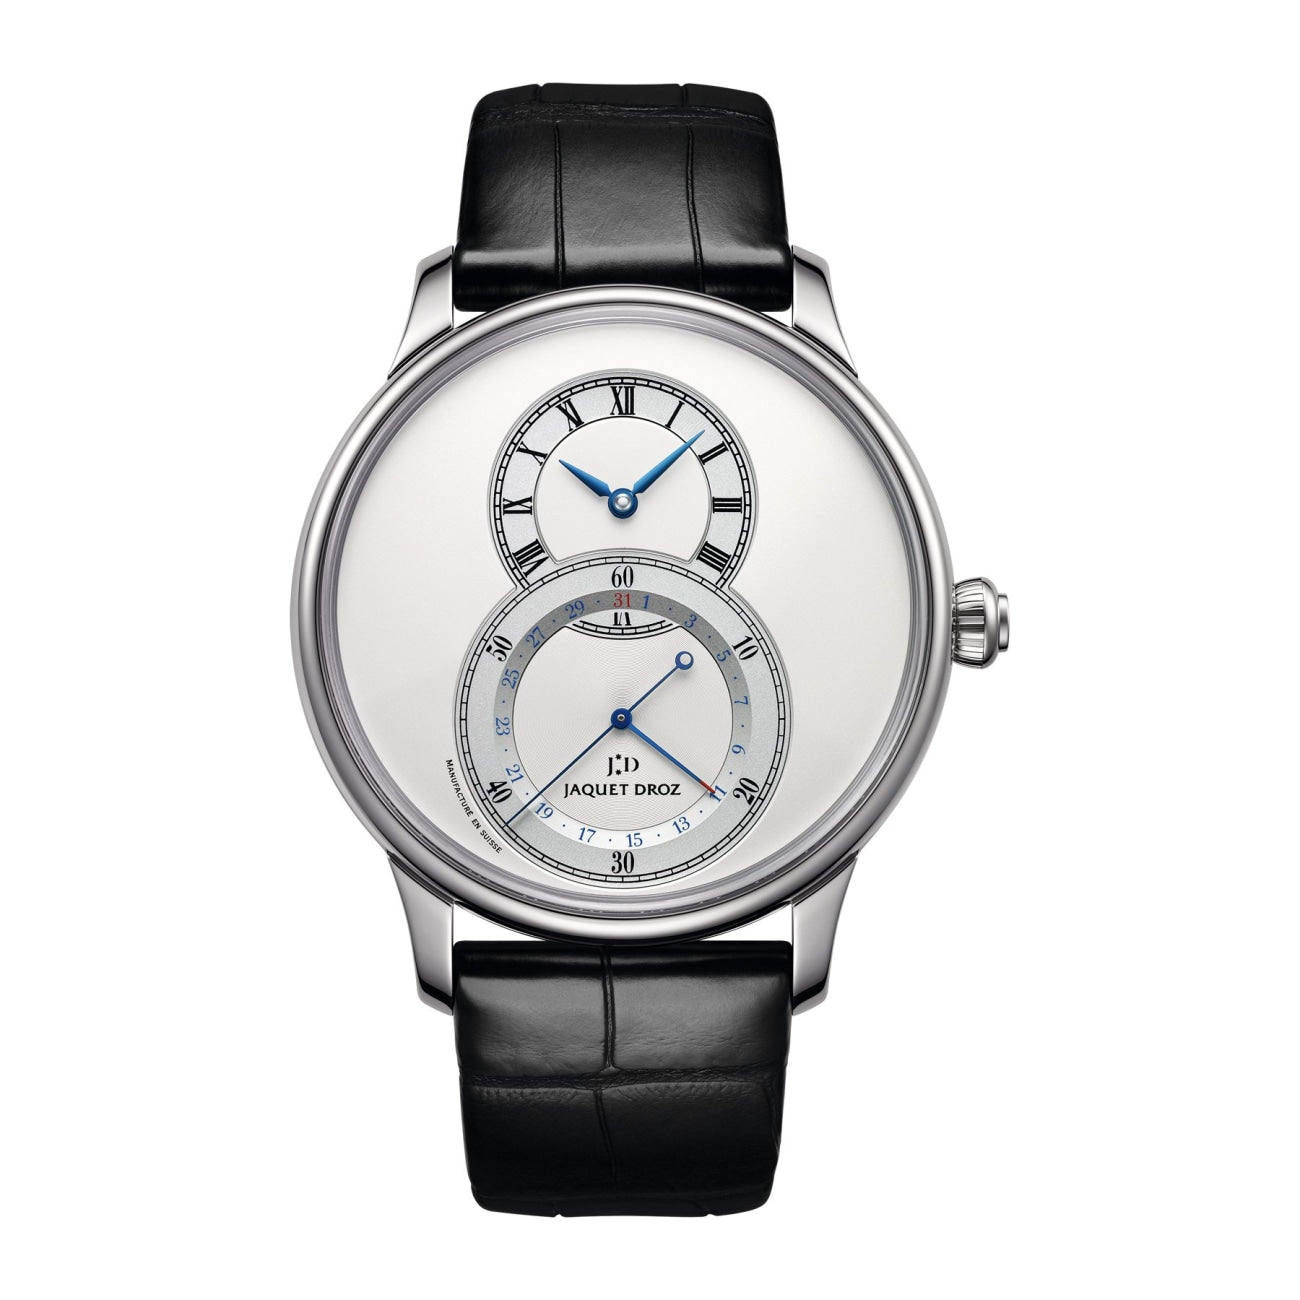 Jaquet Droz Watches - GRANDE SECONDE QUANTIEME SILVER | Manfredi Jewels